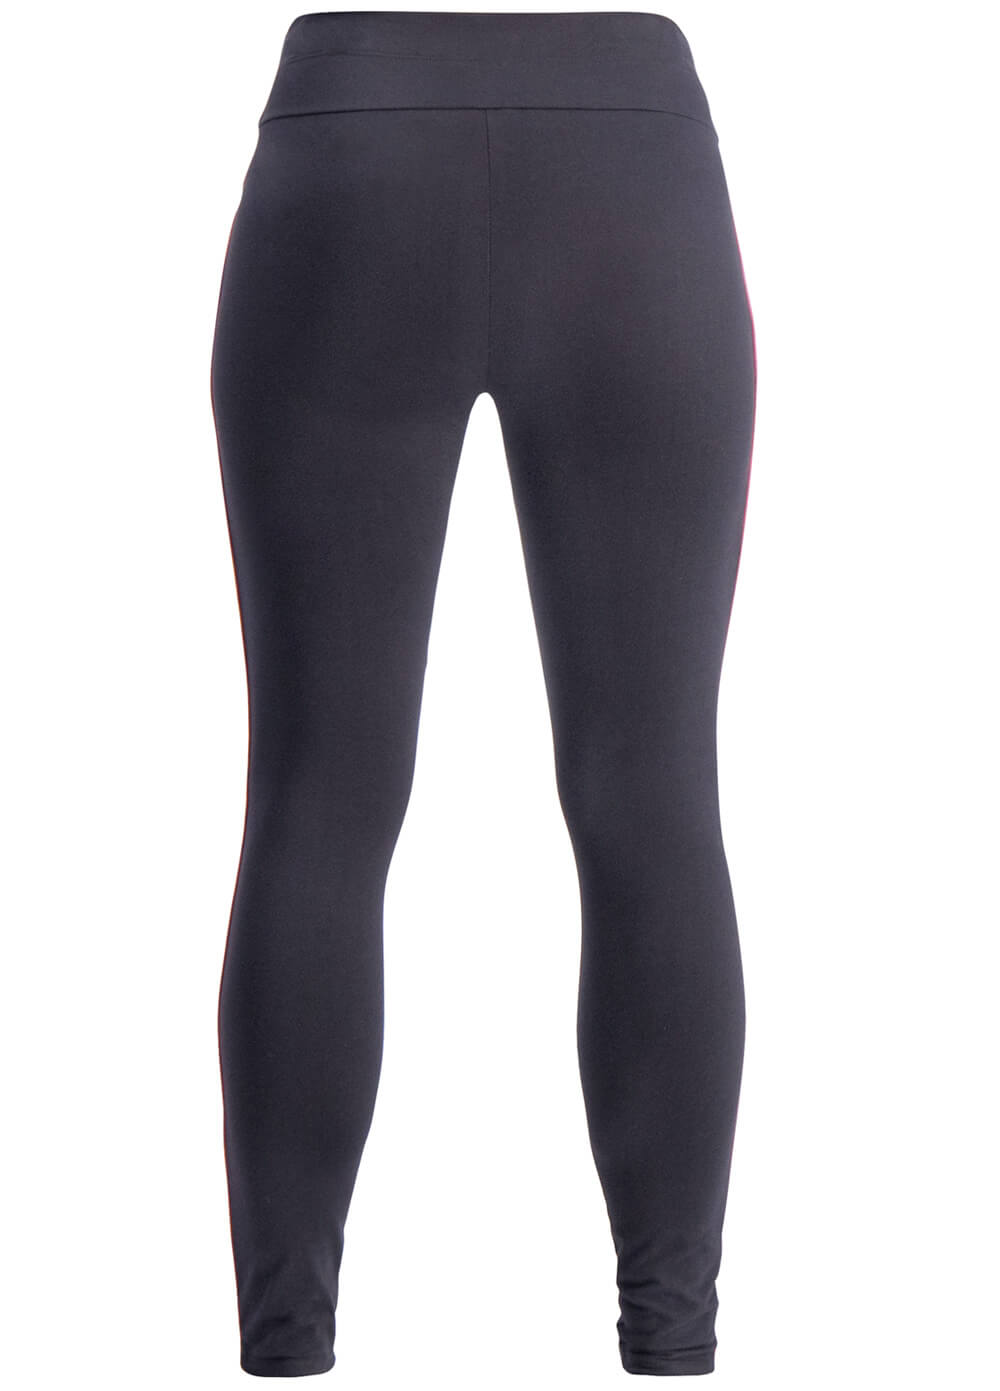 Sporty Piped Maternity Leggings in Black by Esprit